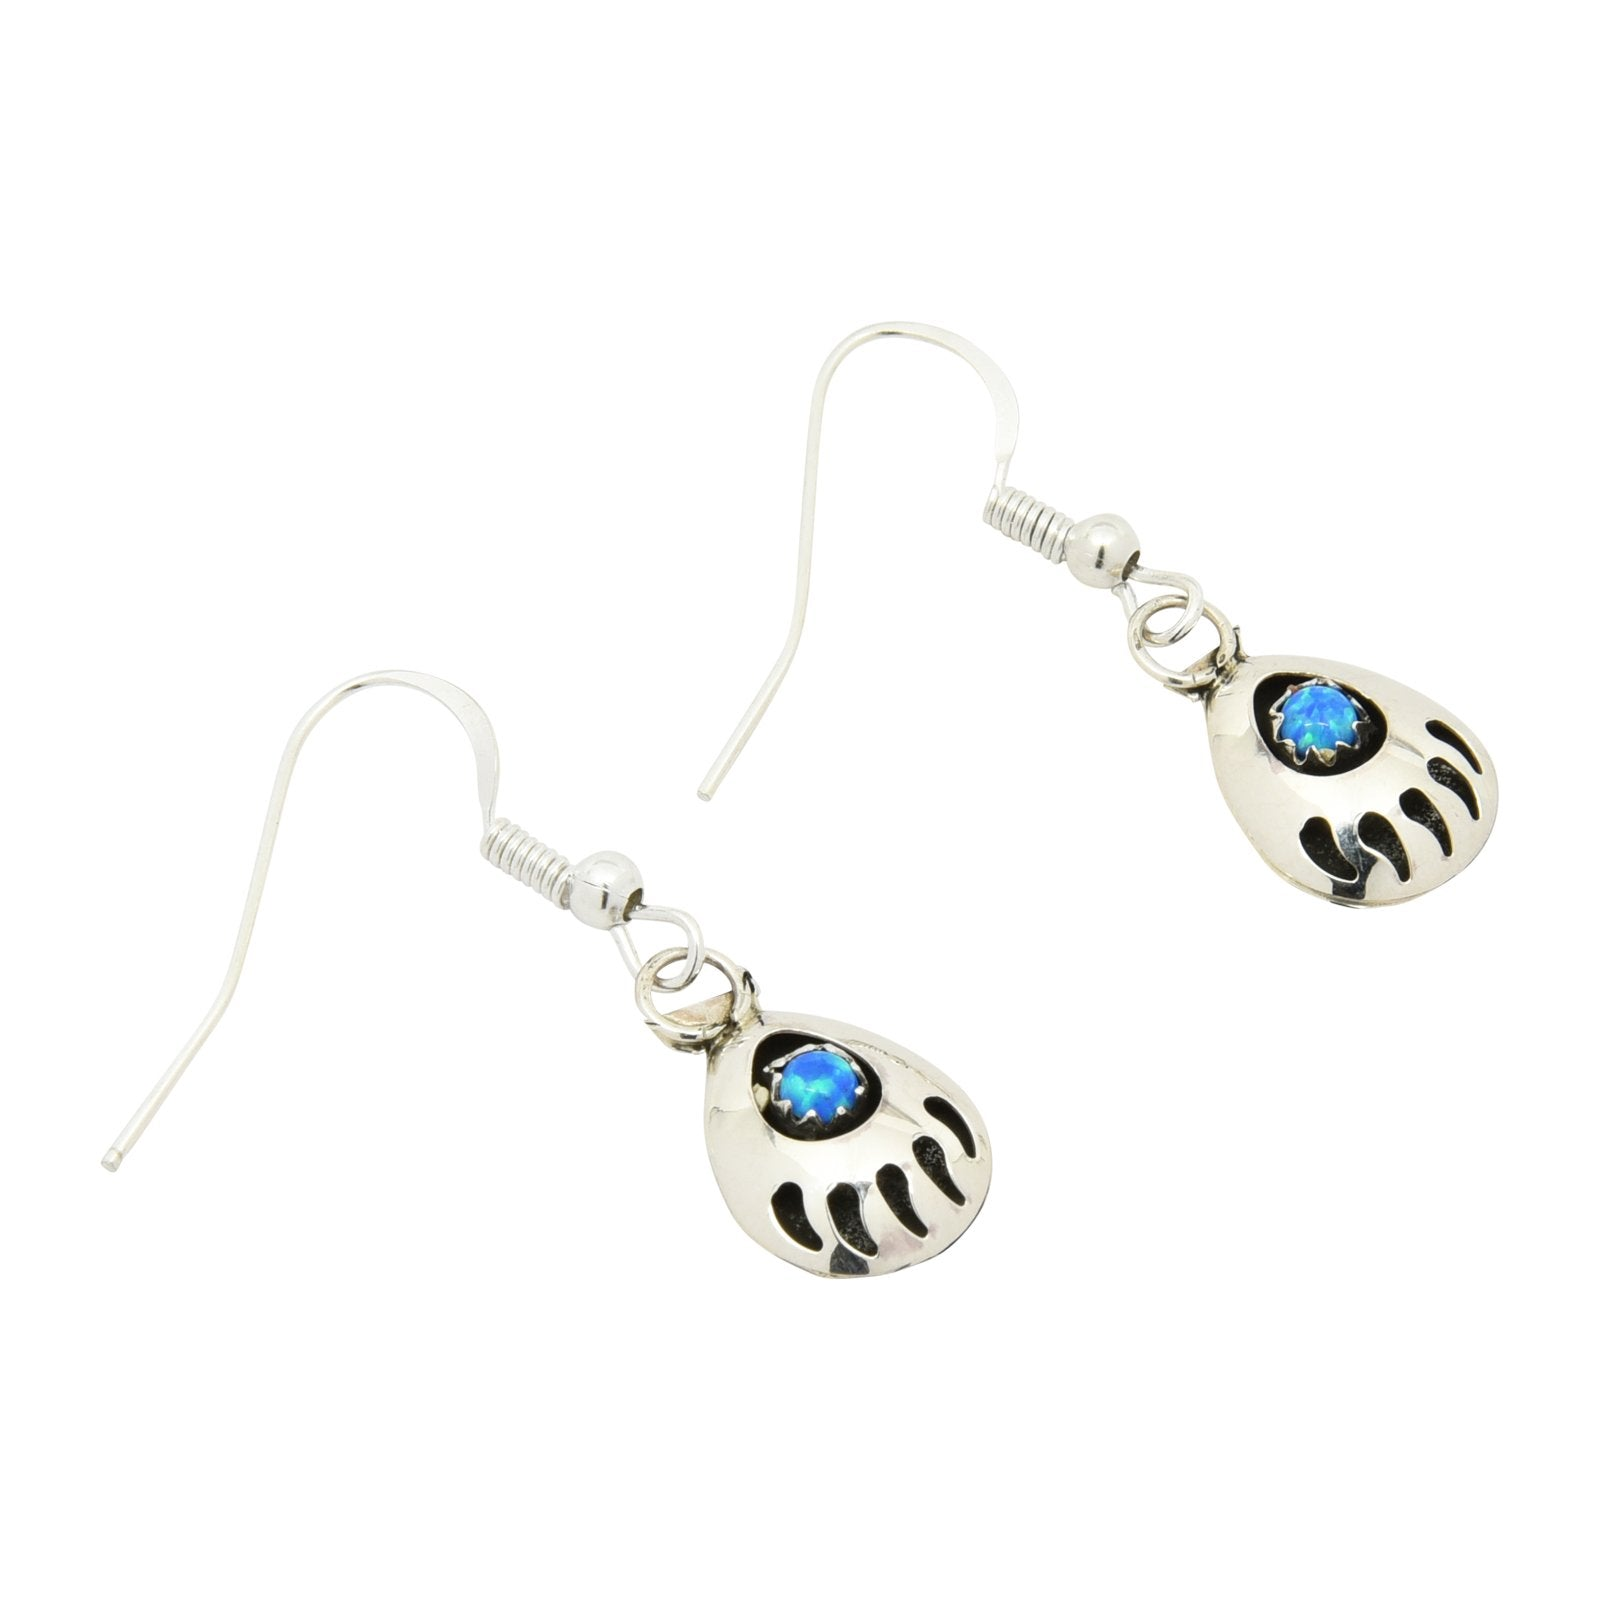 Leta Parker Blue Lab Opal Mini Bear Paw Dangle Earrings Sterling Silver - Turquoise925